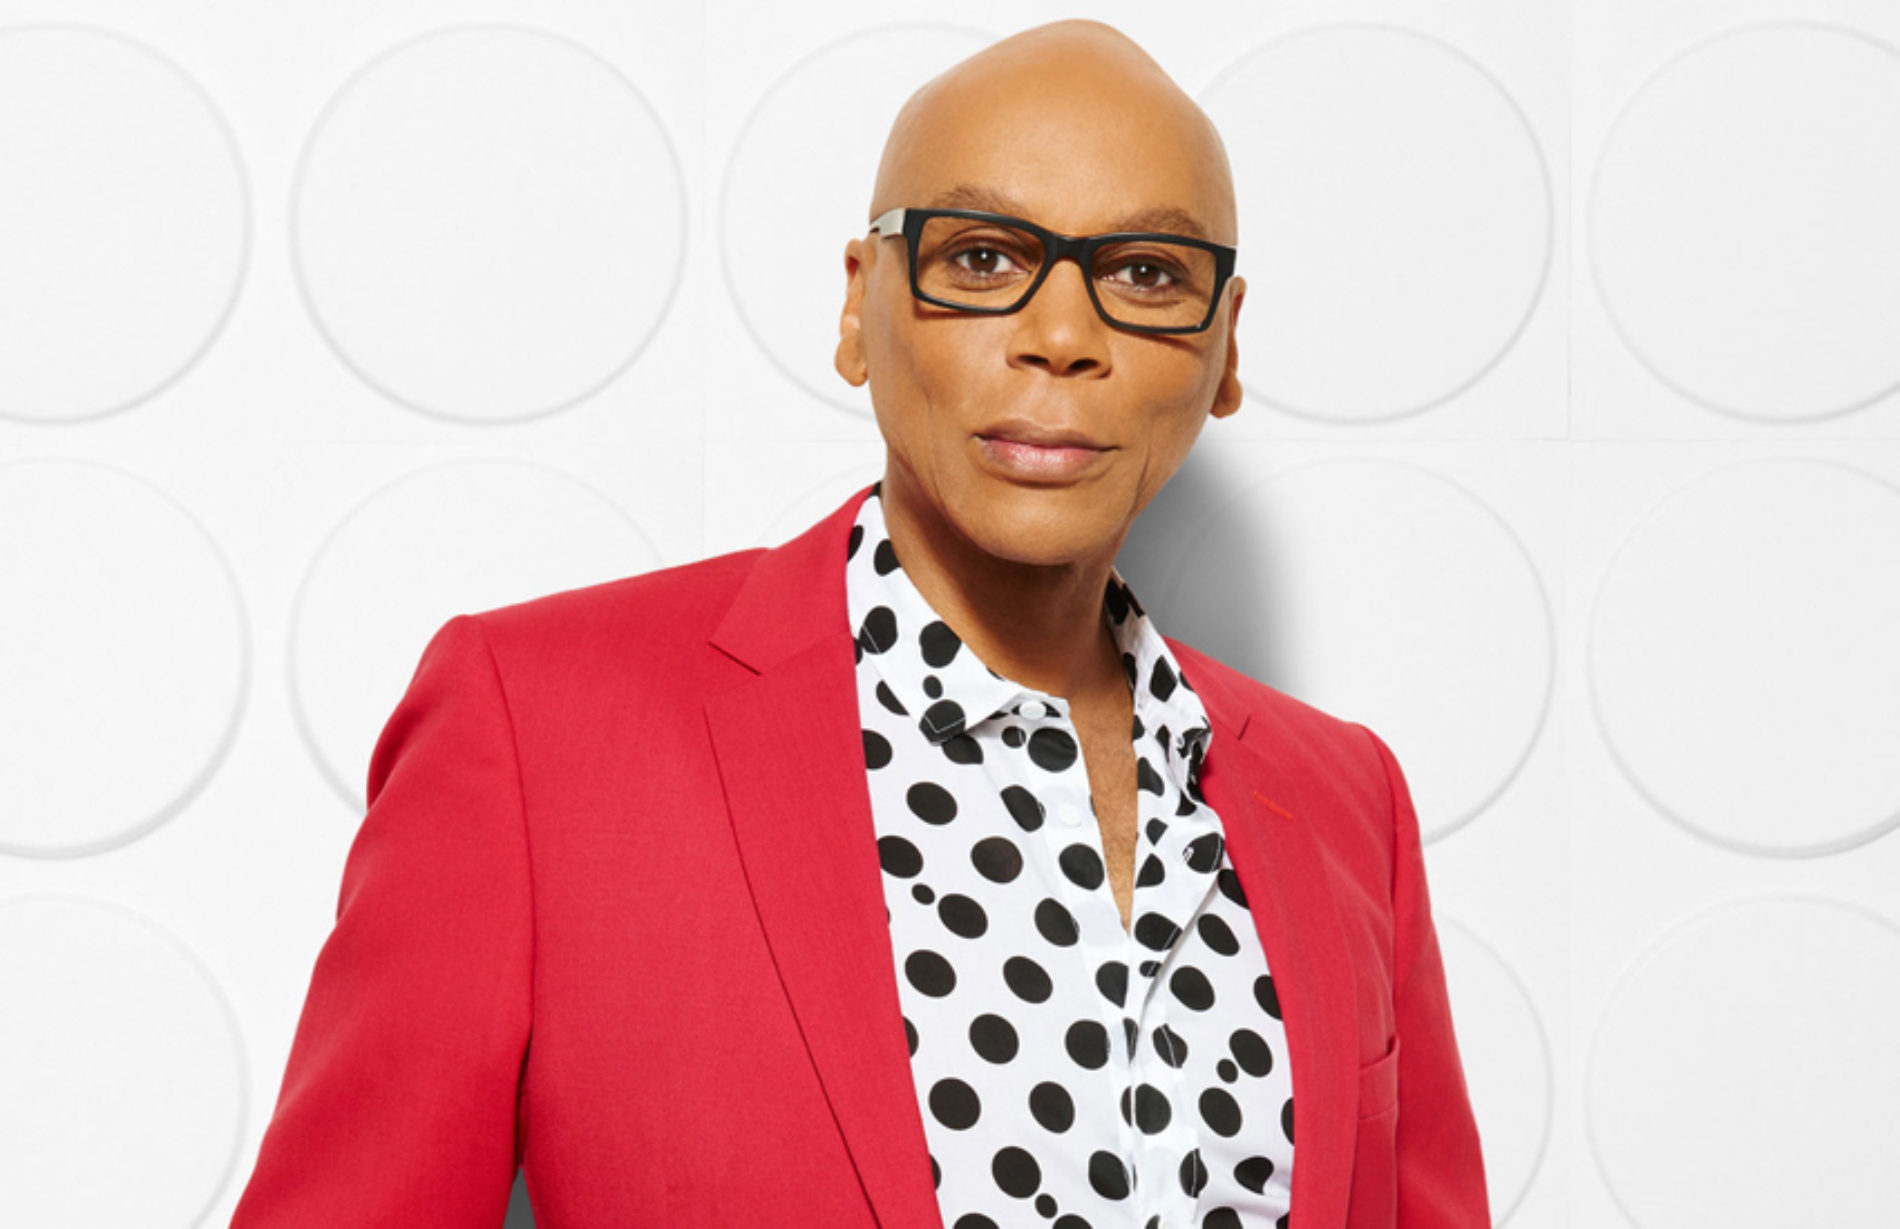 Hulu will develop TV show based on RuPaul's life, and it's called 'Queen'